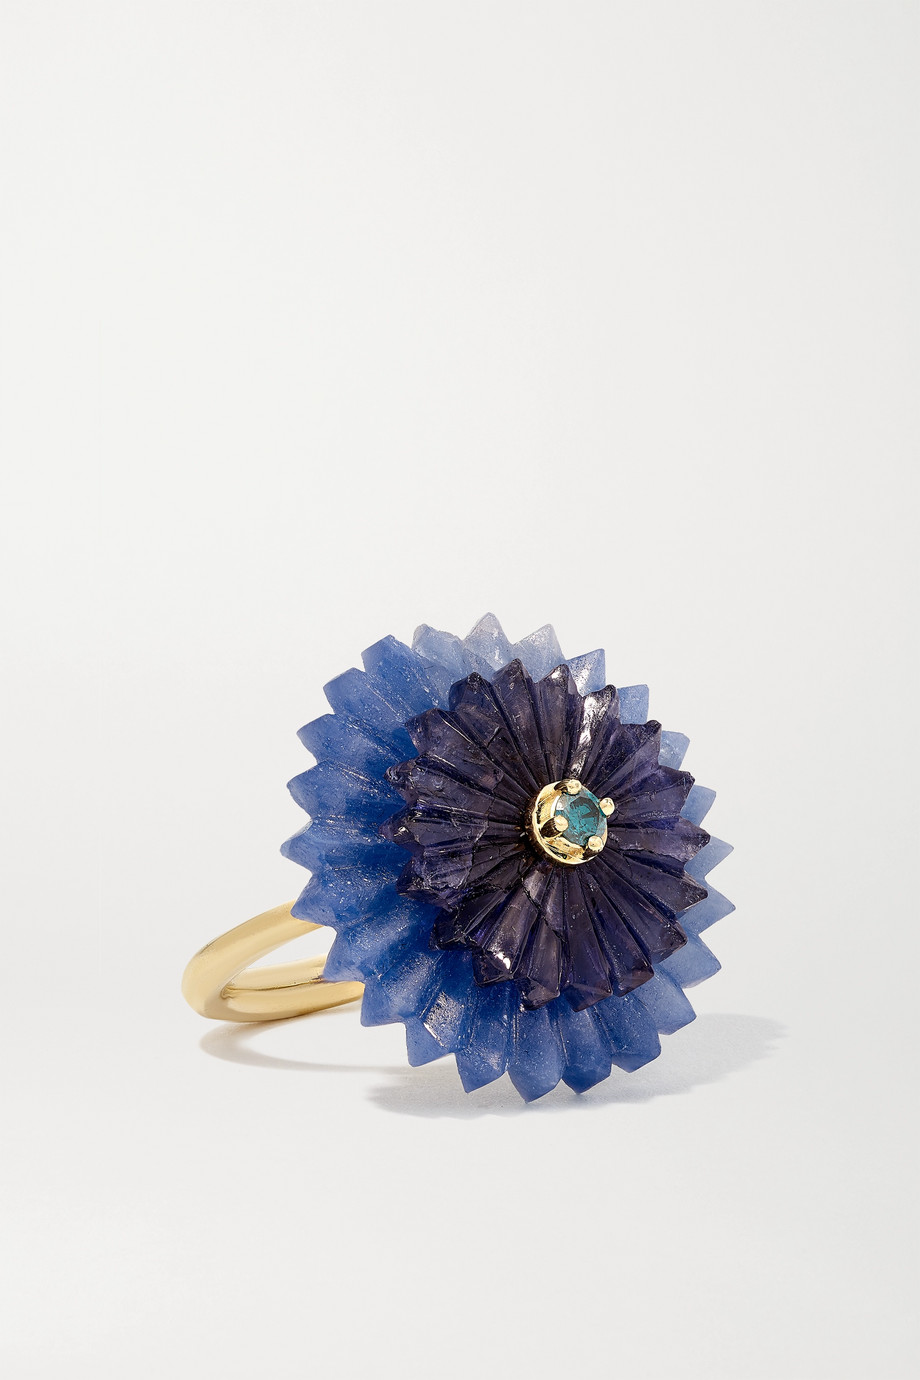 ALICE CICOLINI Summer Snow 9-karat gold, sapphire and iolite ring